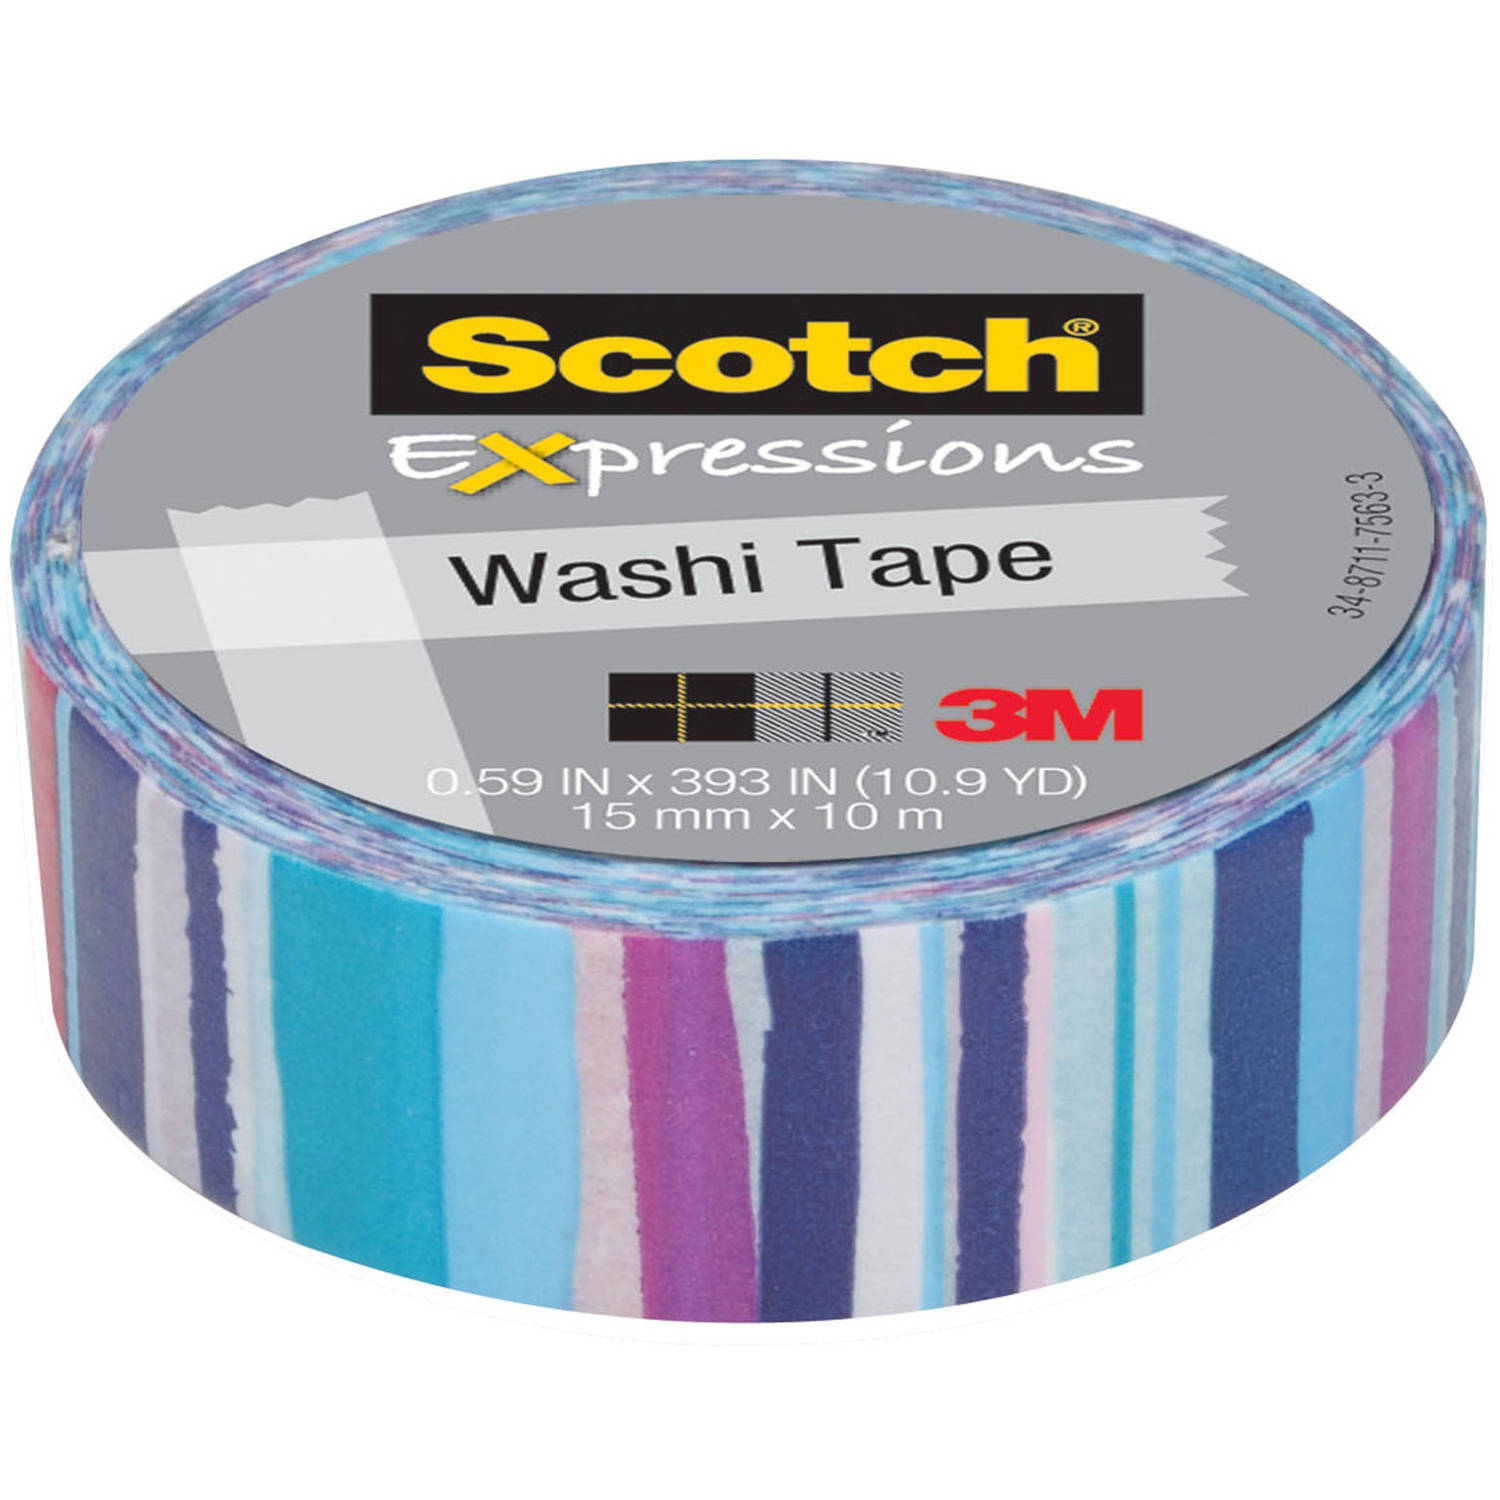 "Scotch Expressions Washi Tape, .59"" x 393"", Watercolor Stripe"